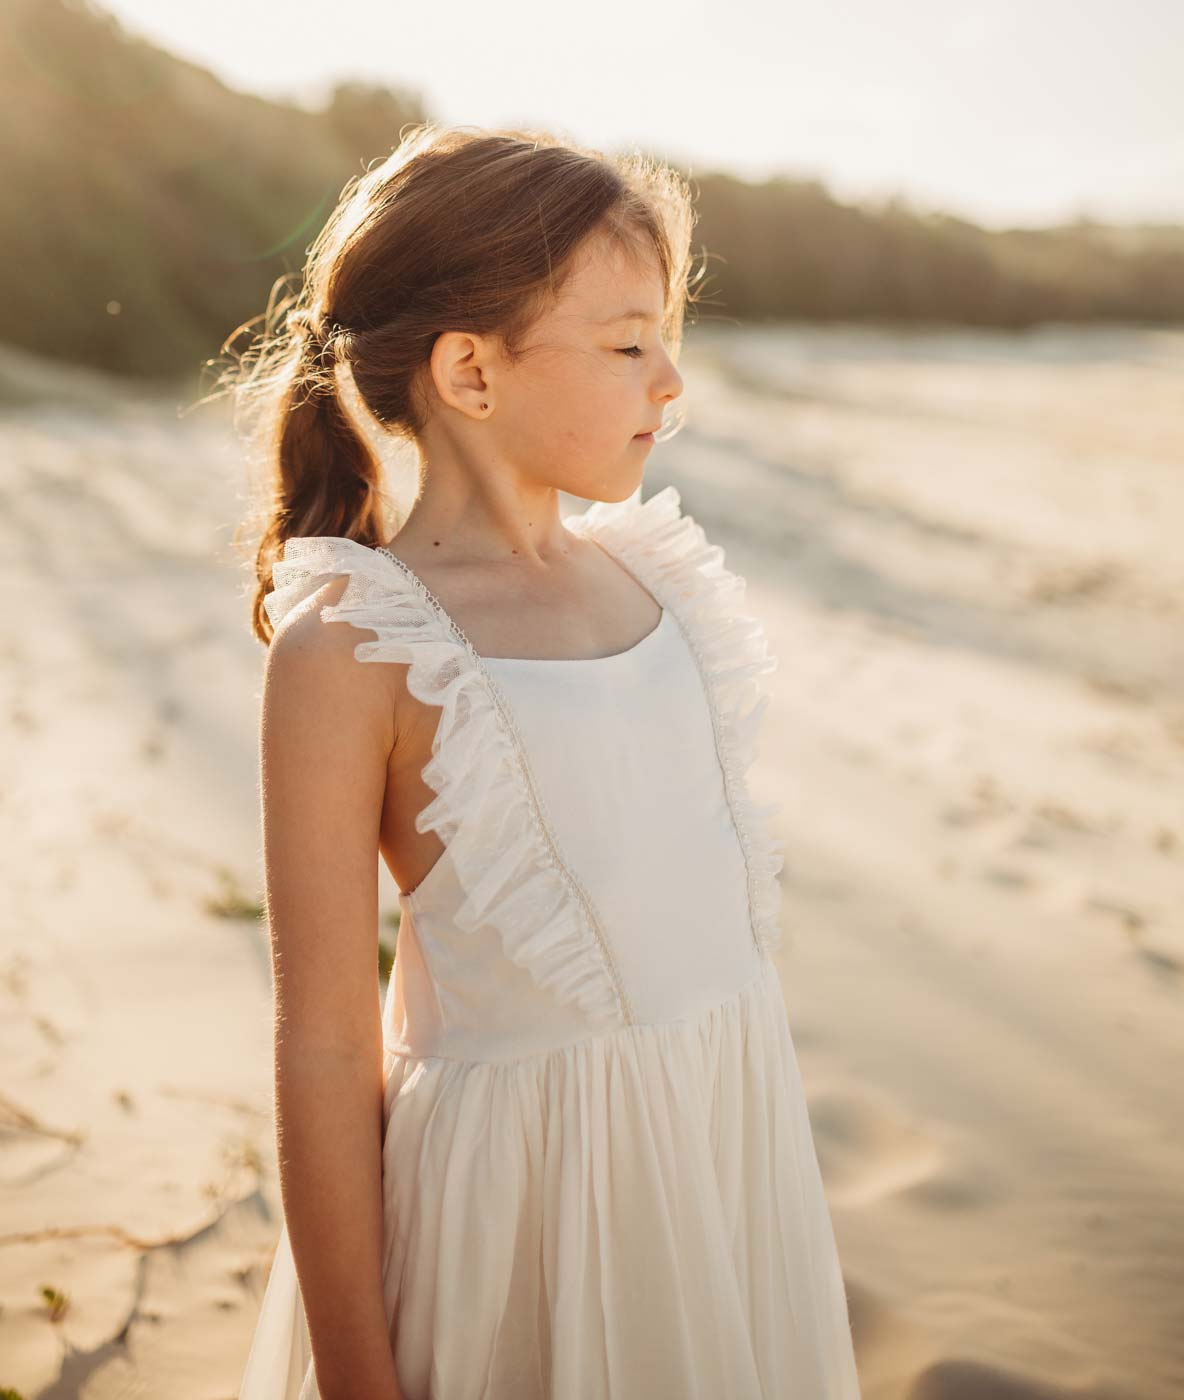 Prairie Girls Vintage Boho Flower Girl Dress